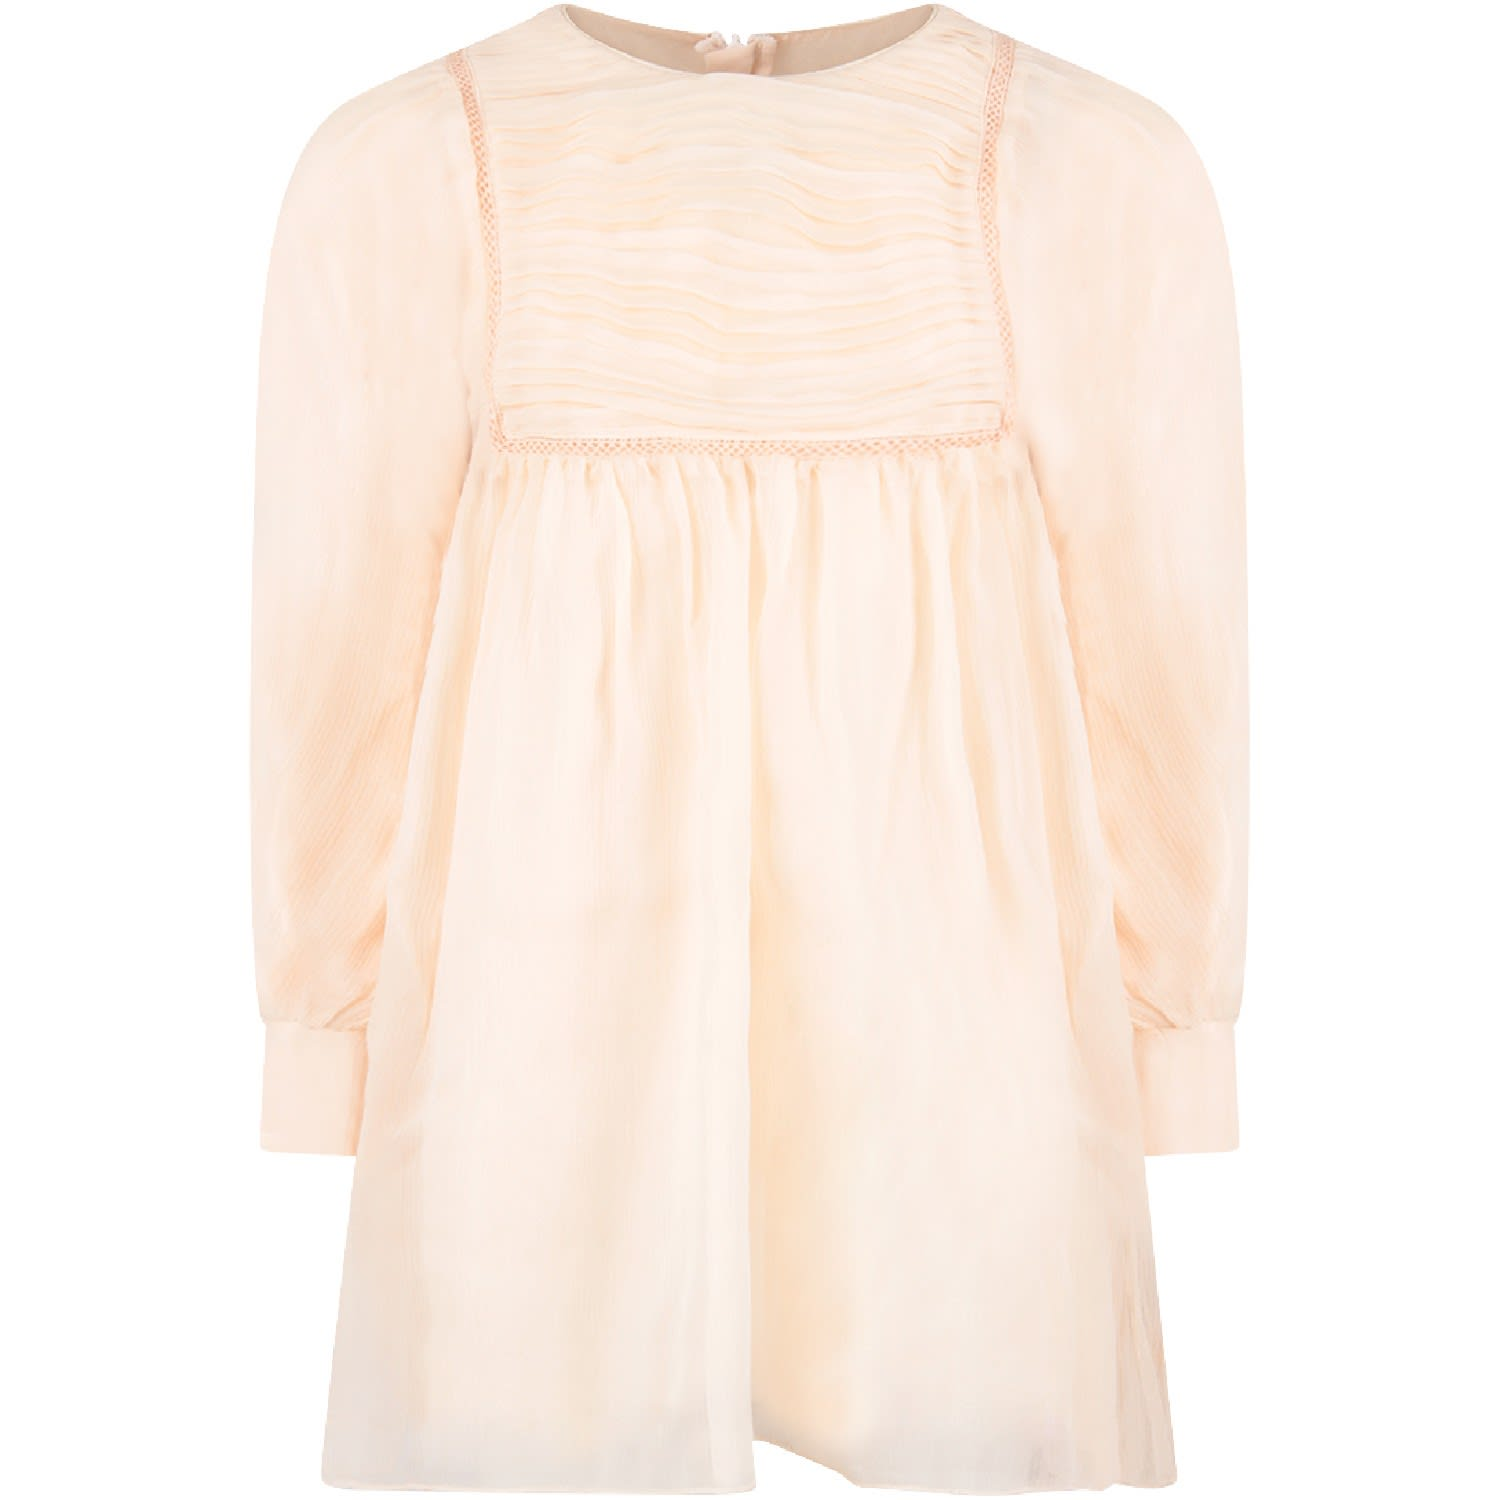 Photo of  Chloé Pink Chiffon Girl Dress- shop Chloé  online sales